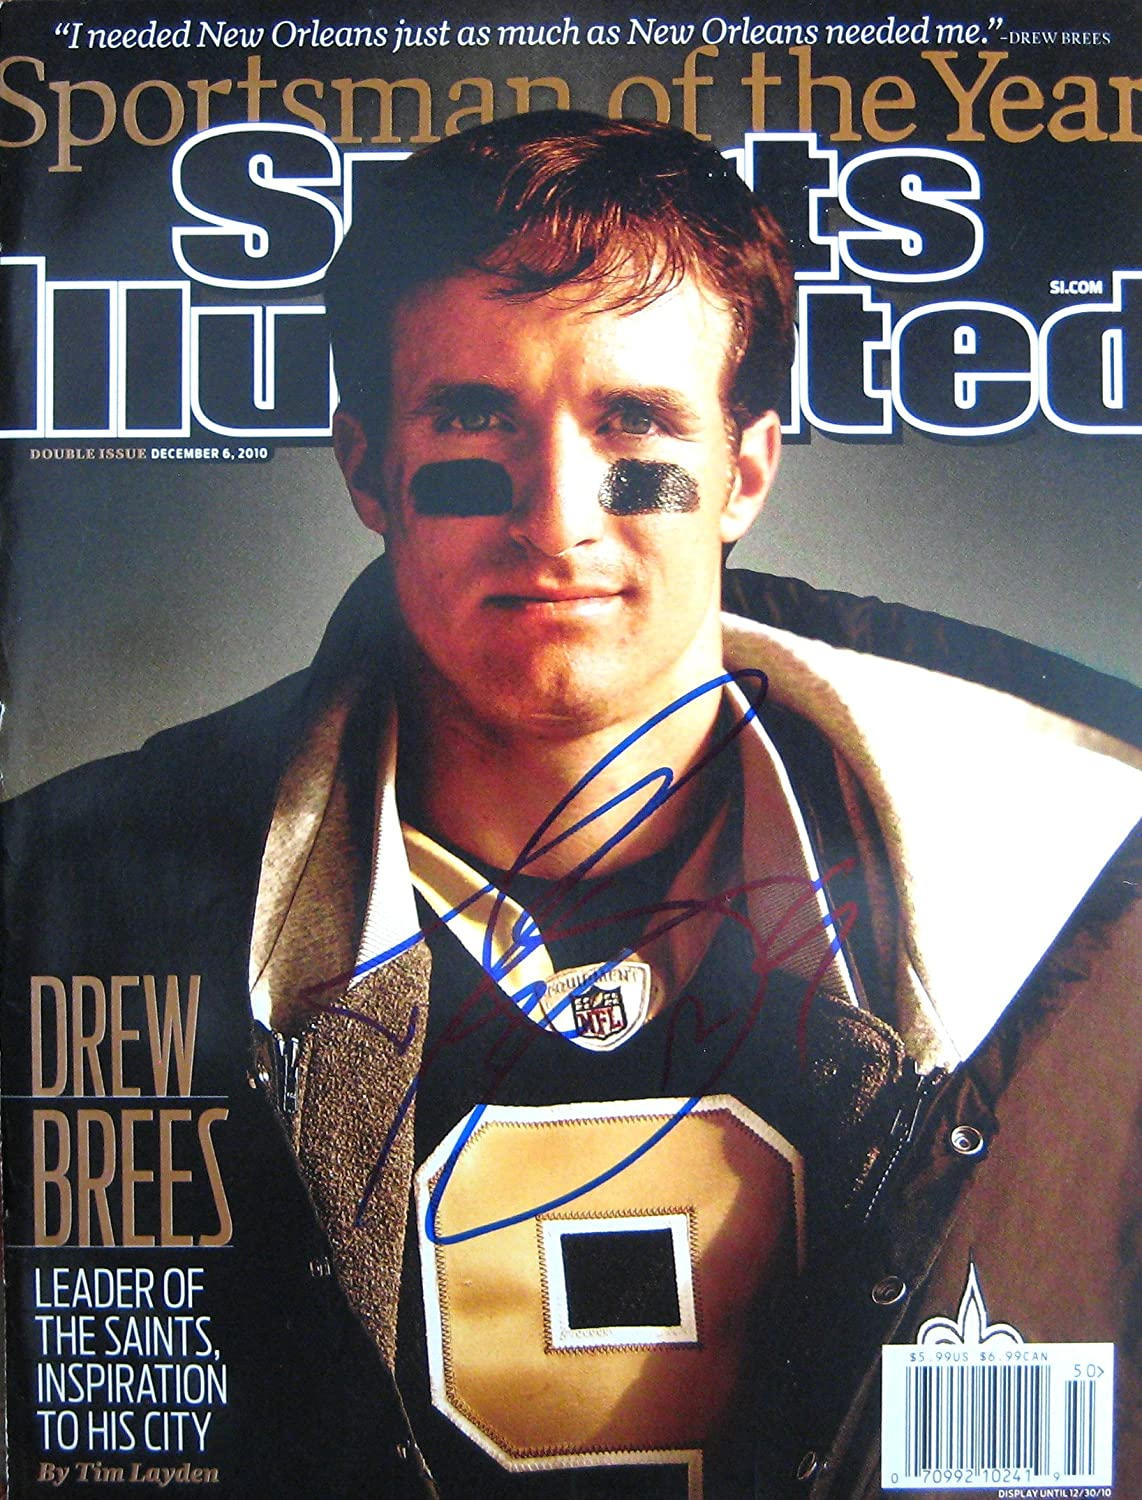 Brees, Drew 12/6/10 autographed magazine